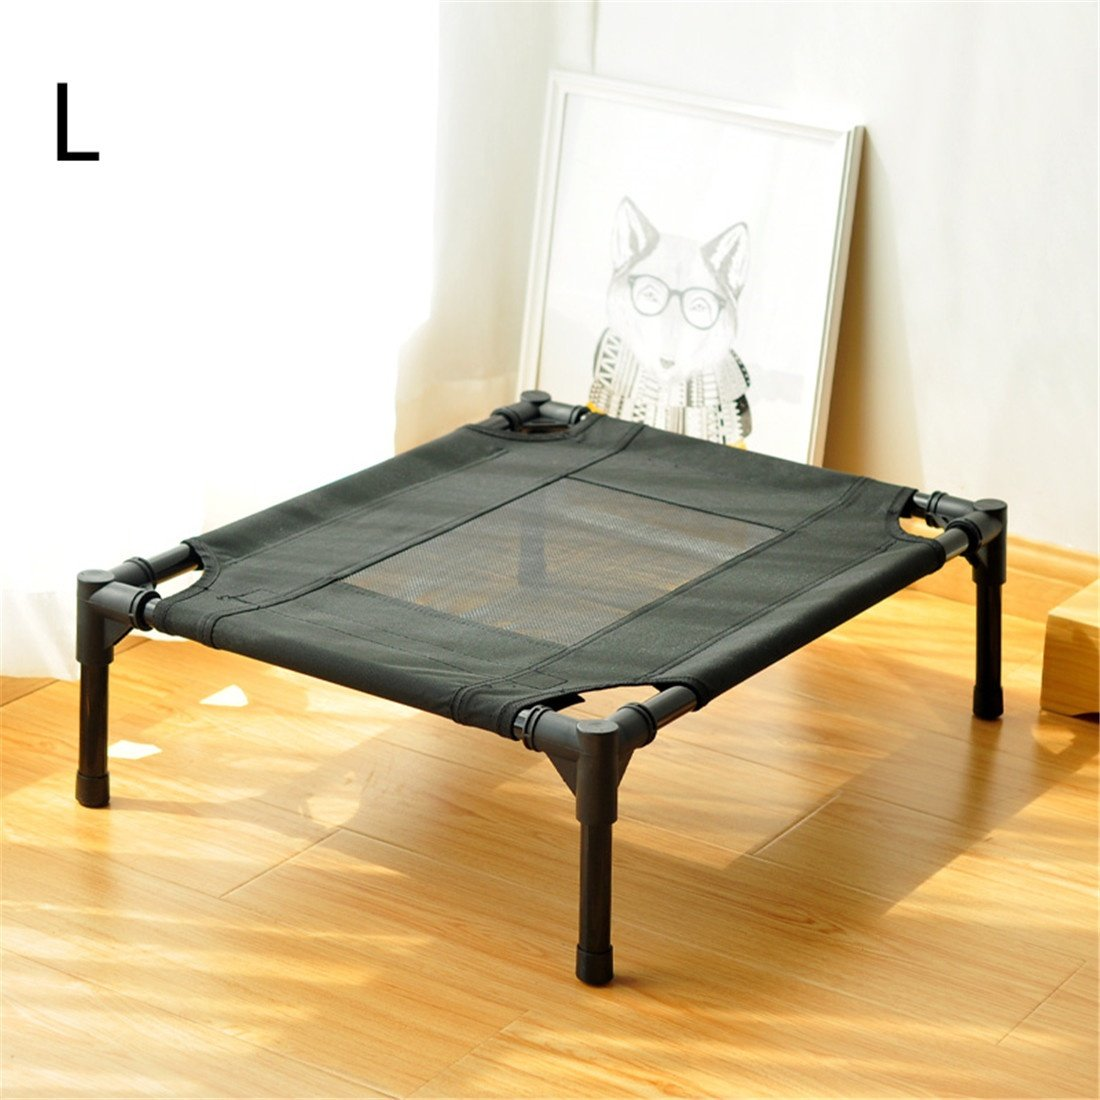 L CHWWO Elevated pet Bed Assembly Portable Waterproof Outdoor Camping Raise The Dog Bed AntiRust Steel Pipe PVC Breathable mesh Removable and Washable, L